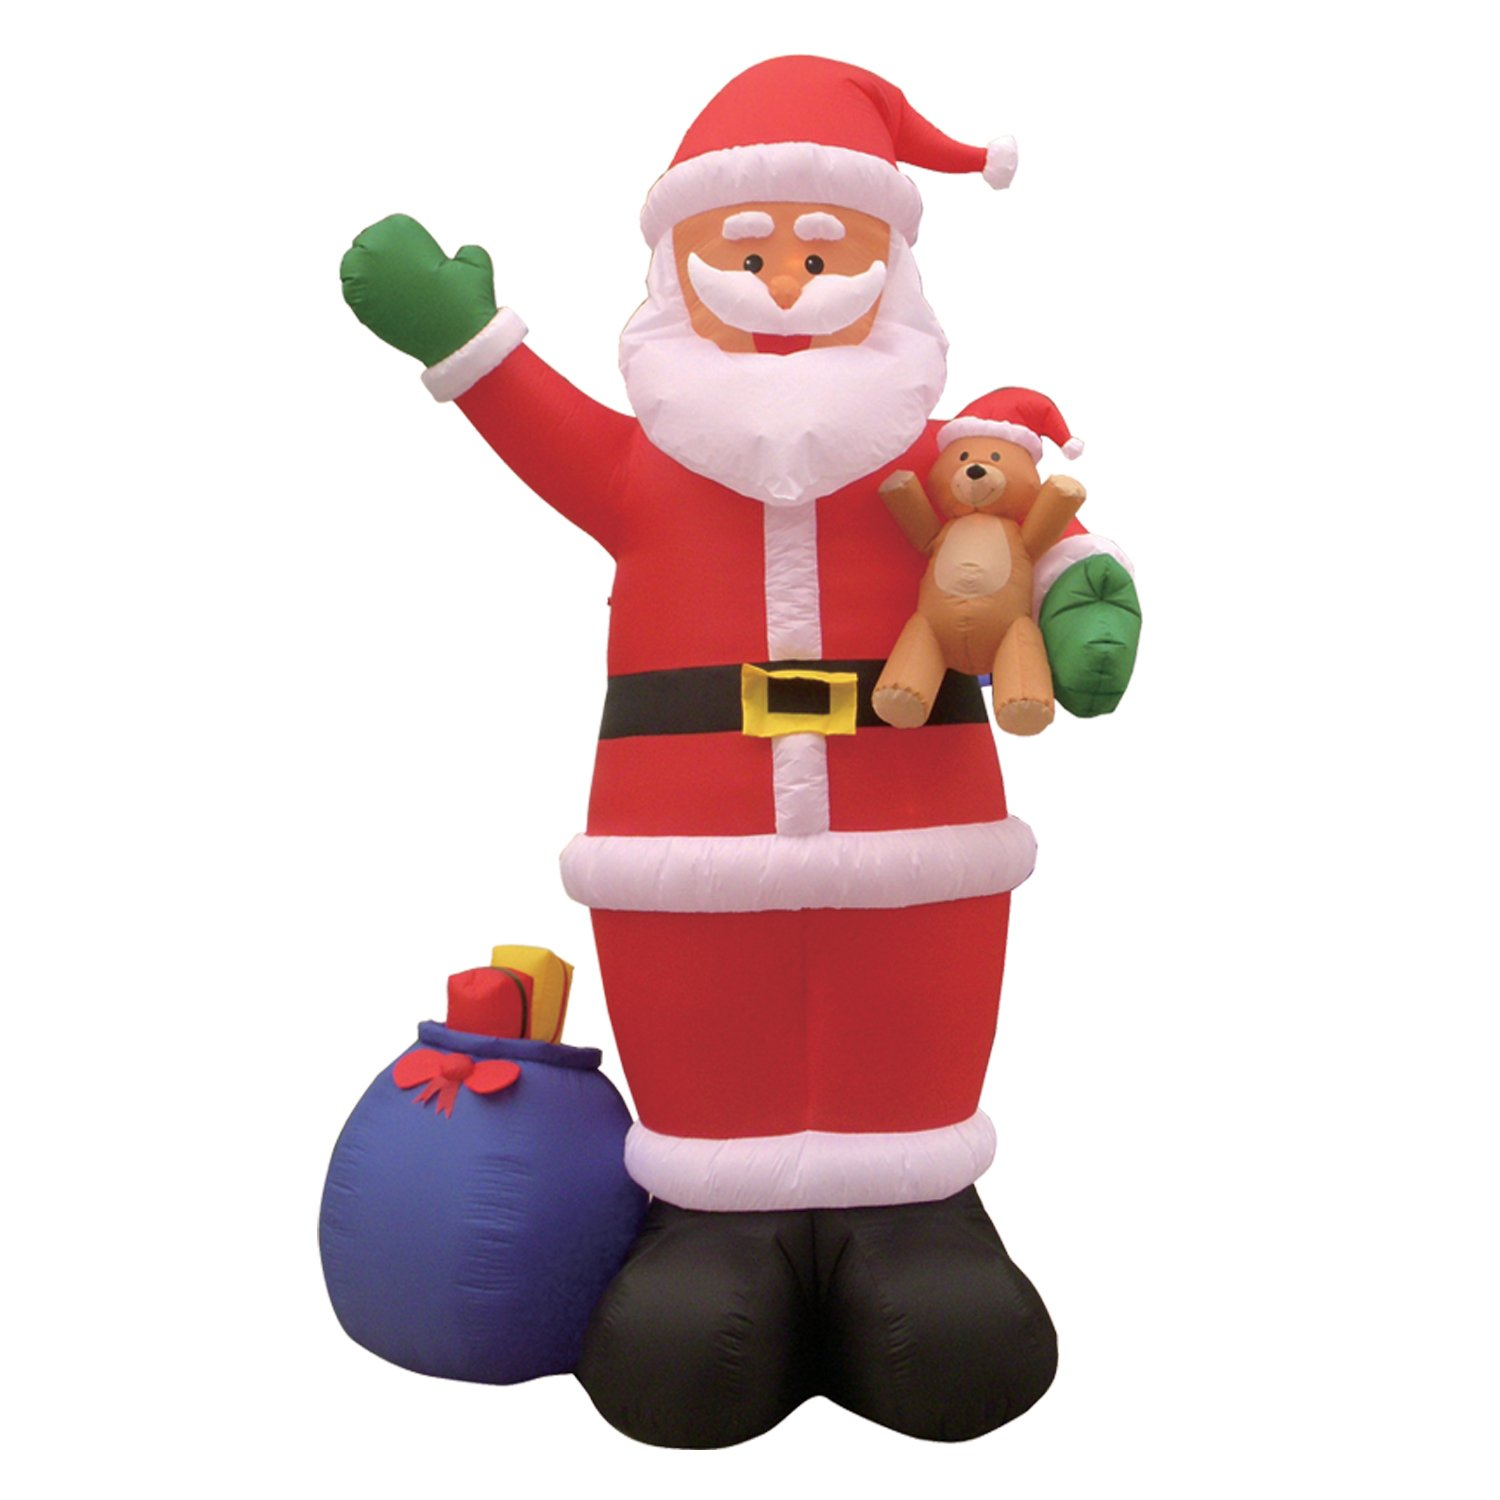 12 Foot Christmas Inflatable Santa Claus with Gift Bag and Bear Yard Garden Decoration by BZB Goods (Image #1)